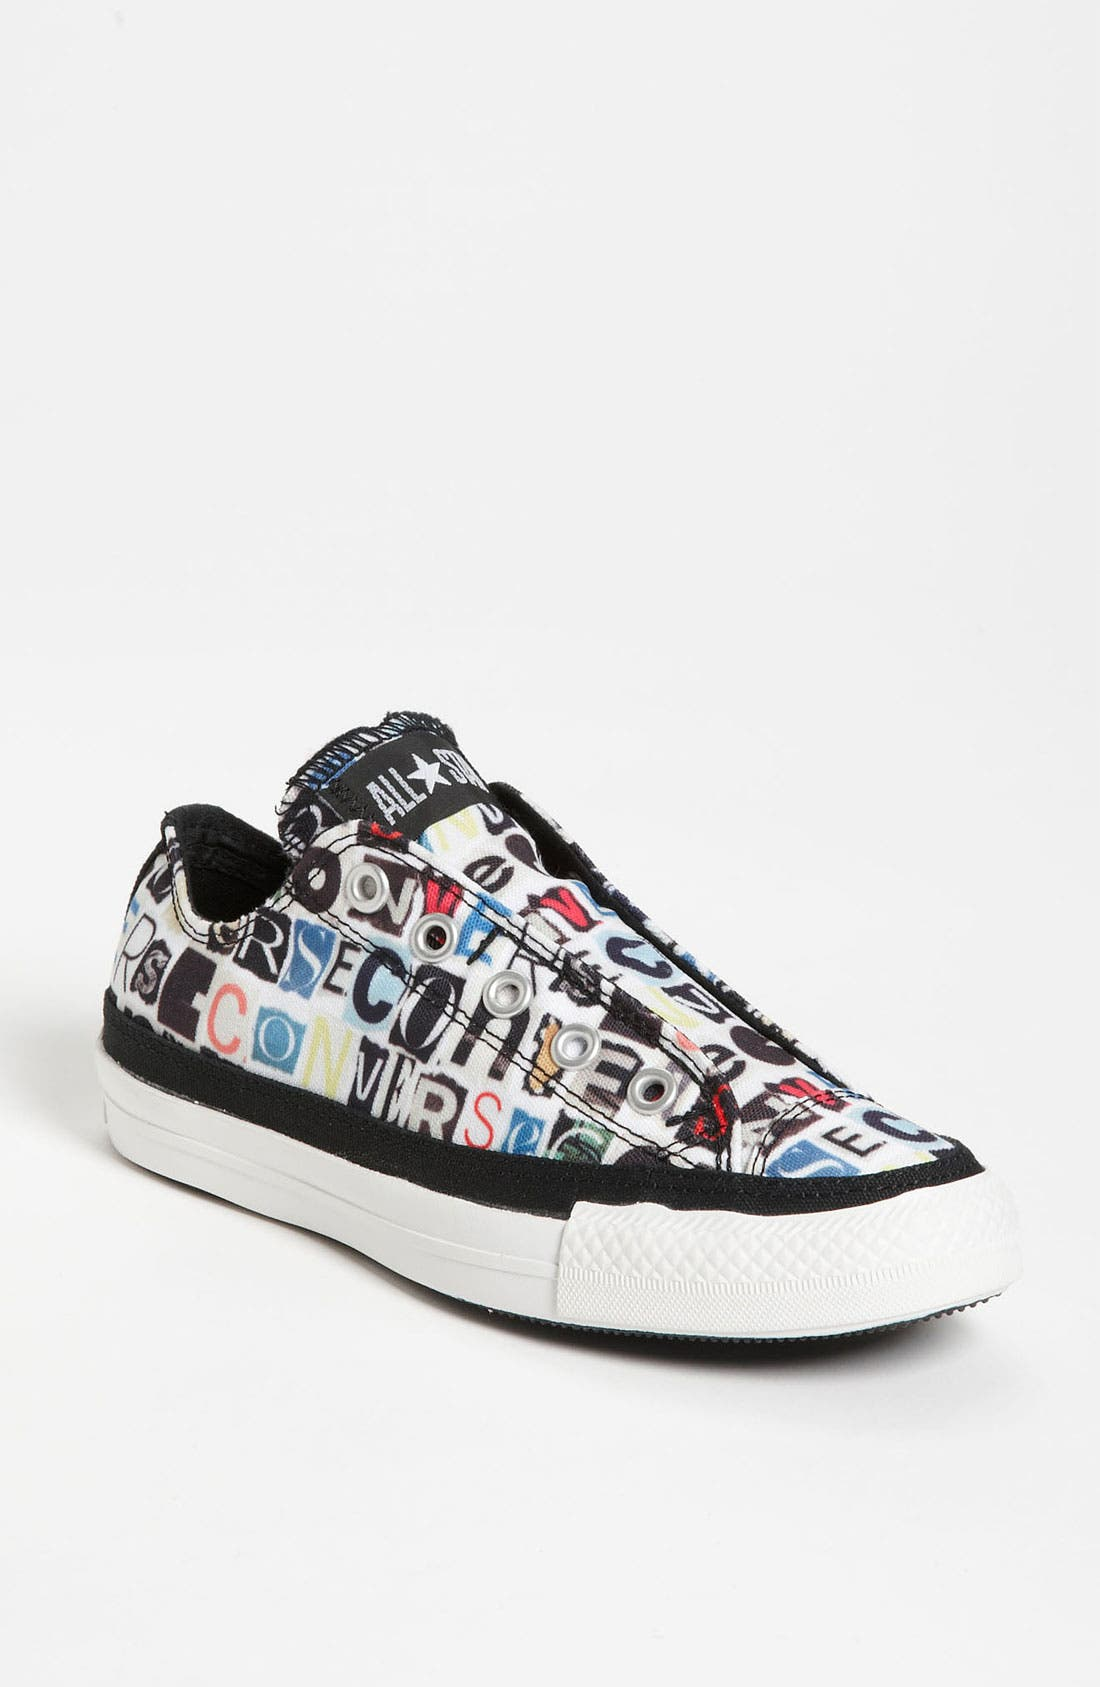 Alternate Image 1 Selected - Converse Chuck Taylor® All Star® 'Ransom Note' Slip-On Sneaker (Women)